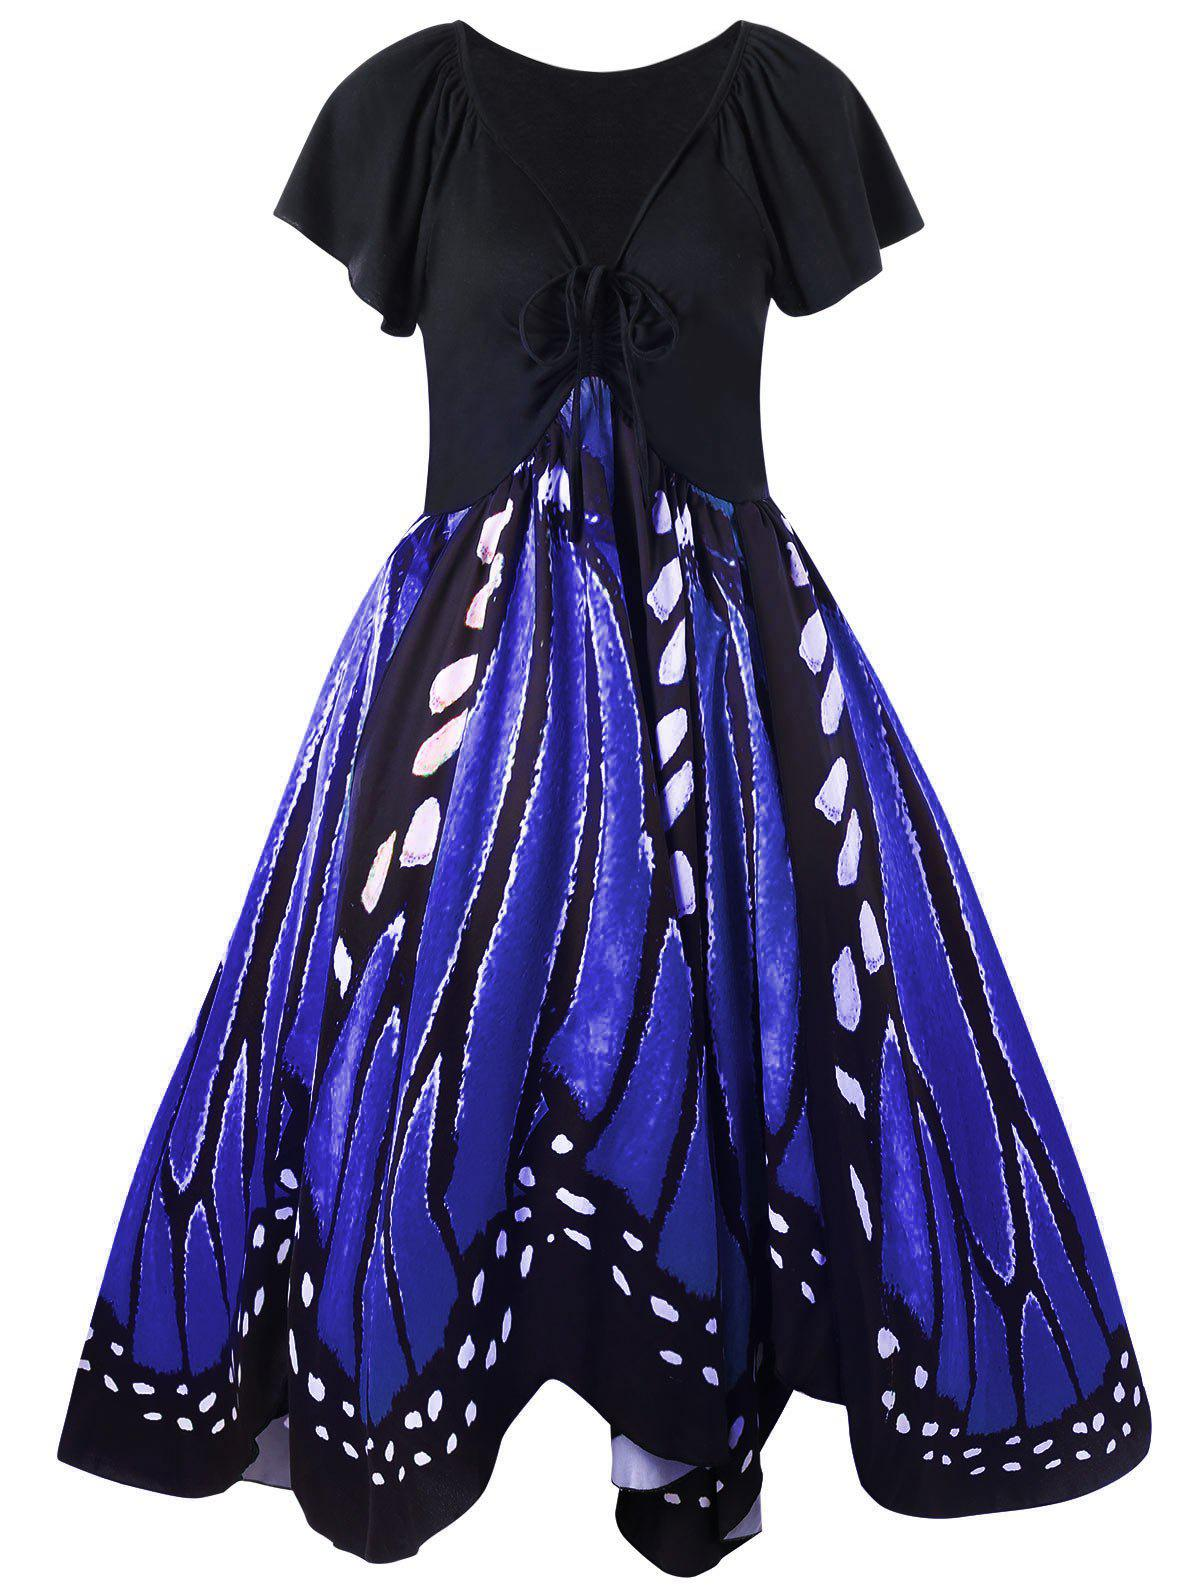 Plus Size Low Cut Butterfly Print Swing DressWOMEN<br><br>Size: XL; Color: BLUE; Style: Vintage; Material: Polyester,Spandex; Silhouette: A-Line; Dresses Length: Knee-Length; Neckline: Plunging Neck; Sleeve Length: Short Sleeves; Pattern Type: Butterfly; With Belt: No; Season: Fall,Spring; Weight: 0.3700kg; Package Contents: 1 x Dress;